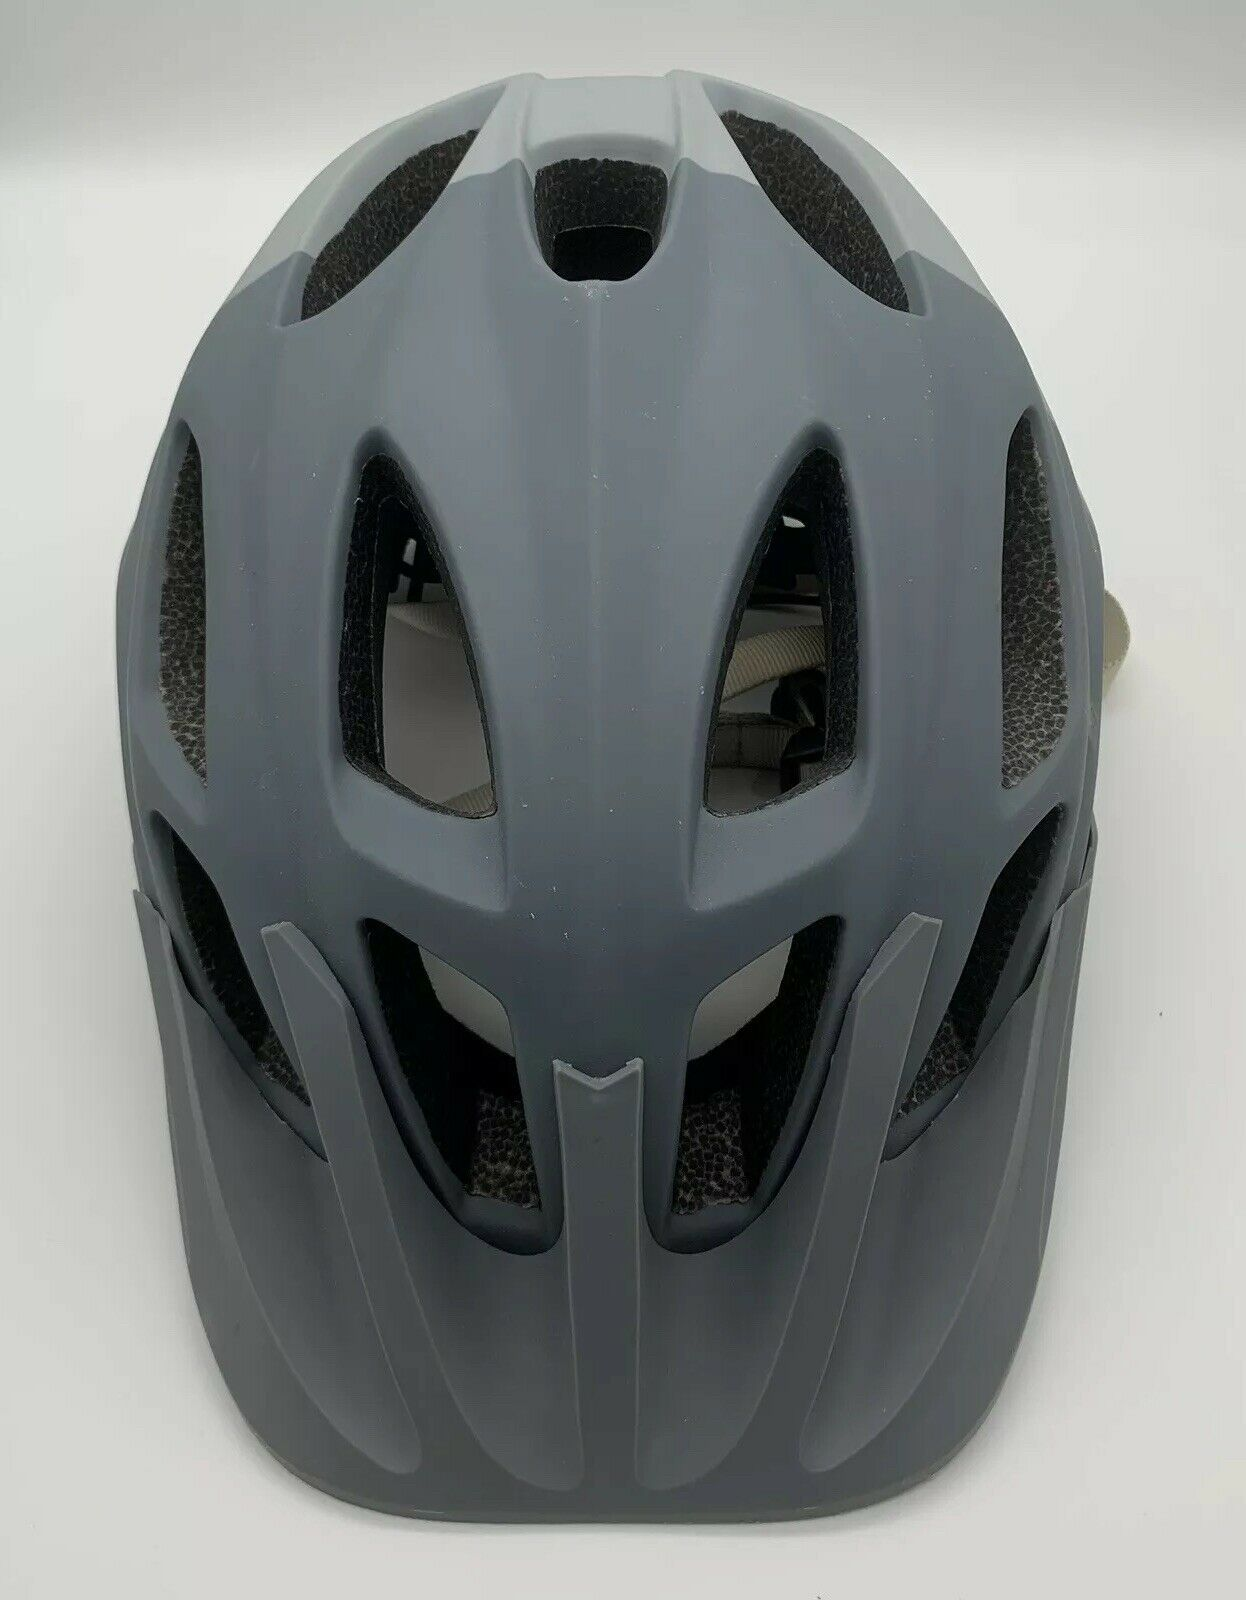 NEW Freetown Rouler Bicycle Helmet Adult And Youth With LED Light w// battery NWT